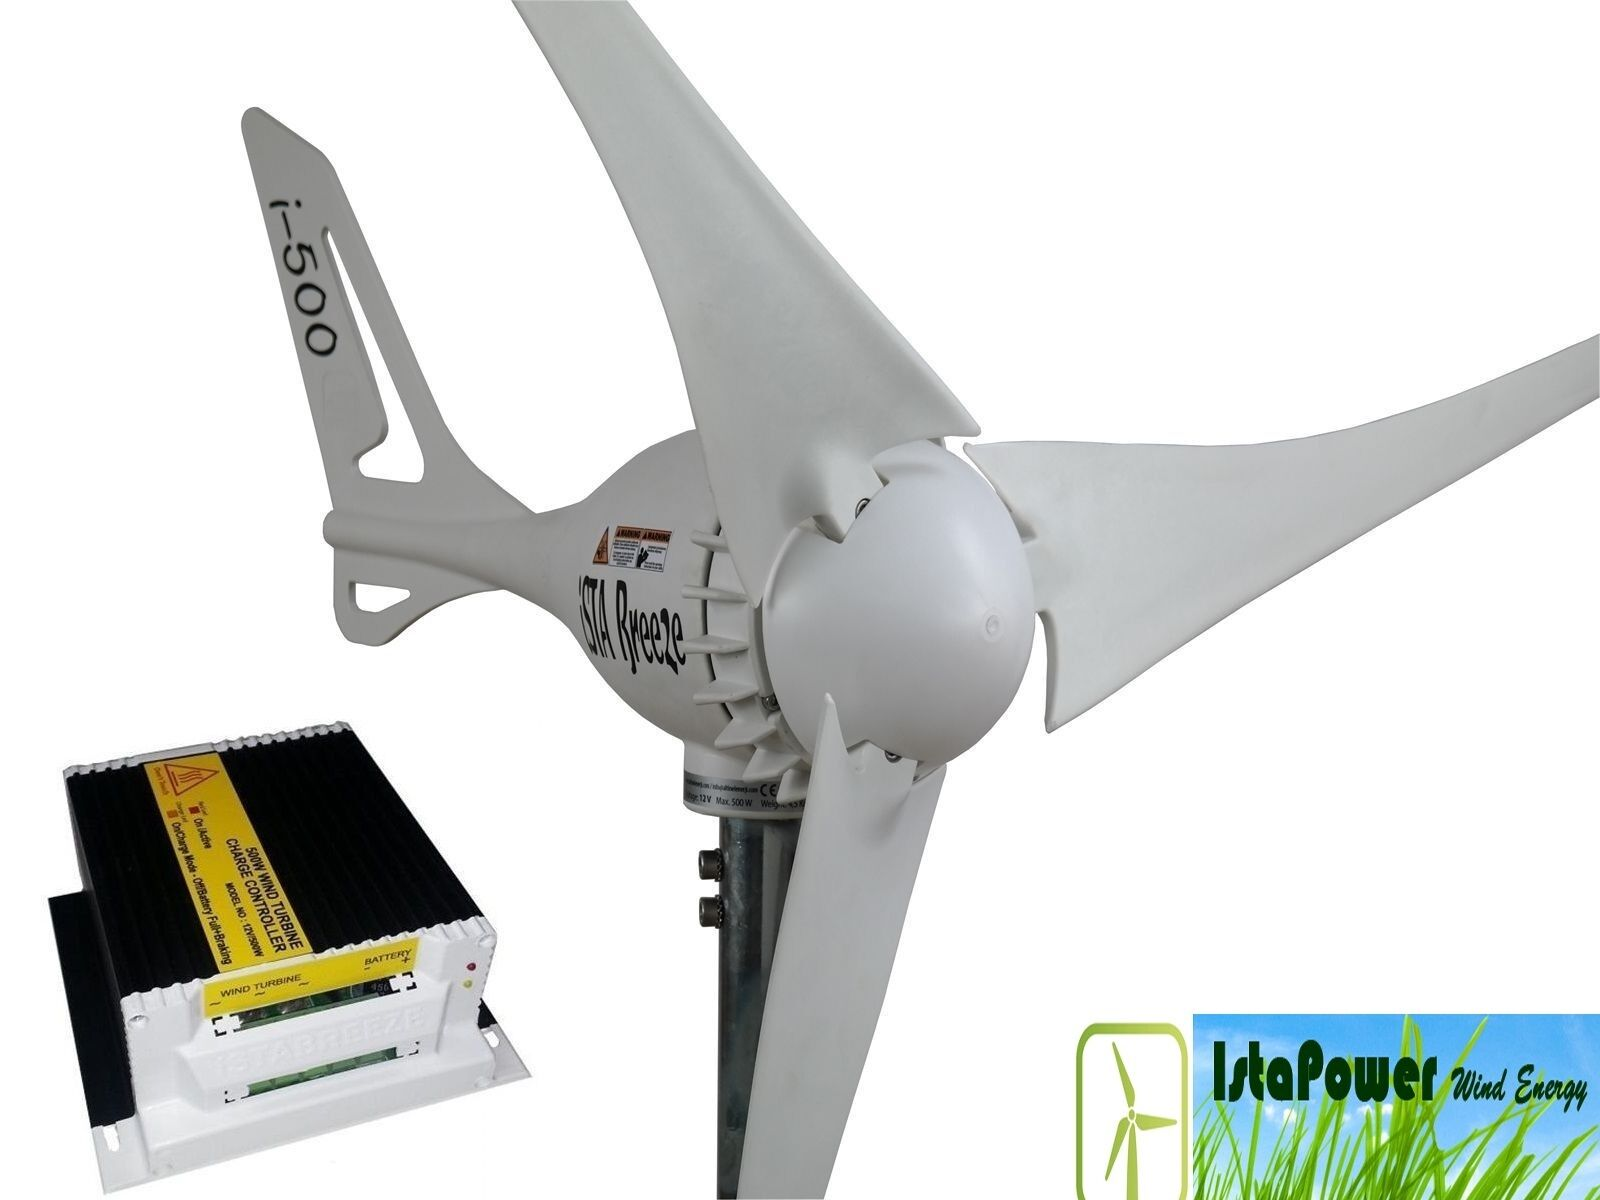 Kit Wind Generator + charge controller 24V/500W Weiß,wind turbine iSTA Breeze®